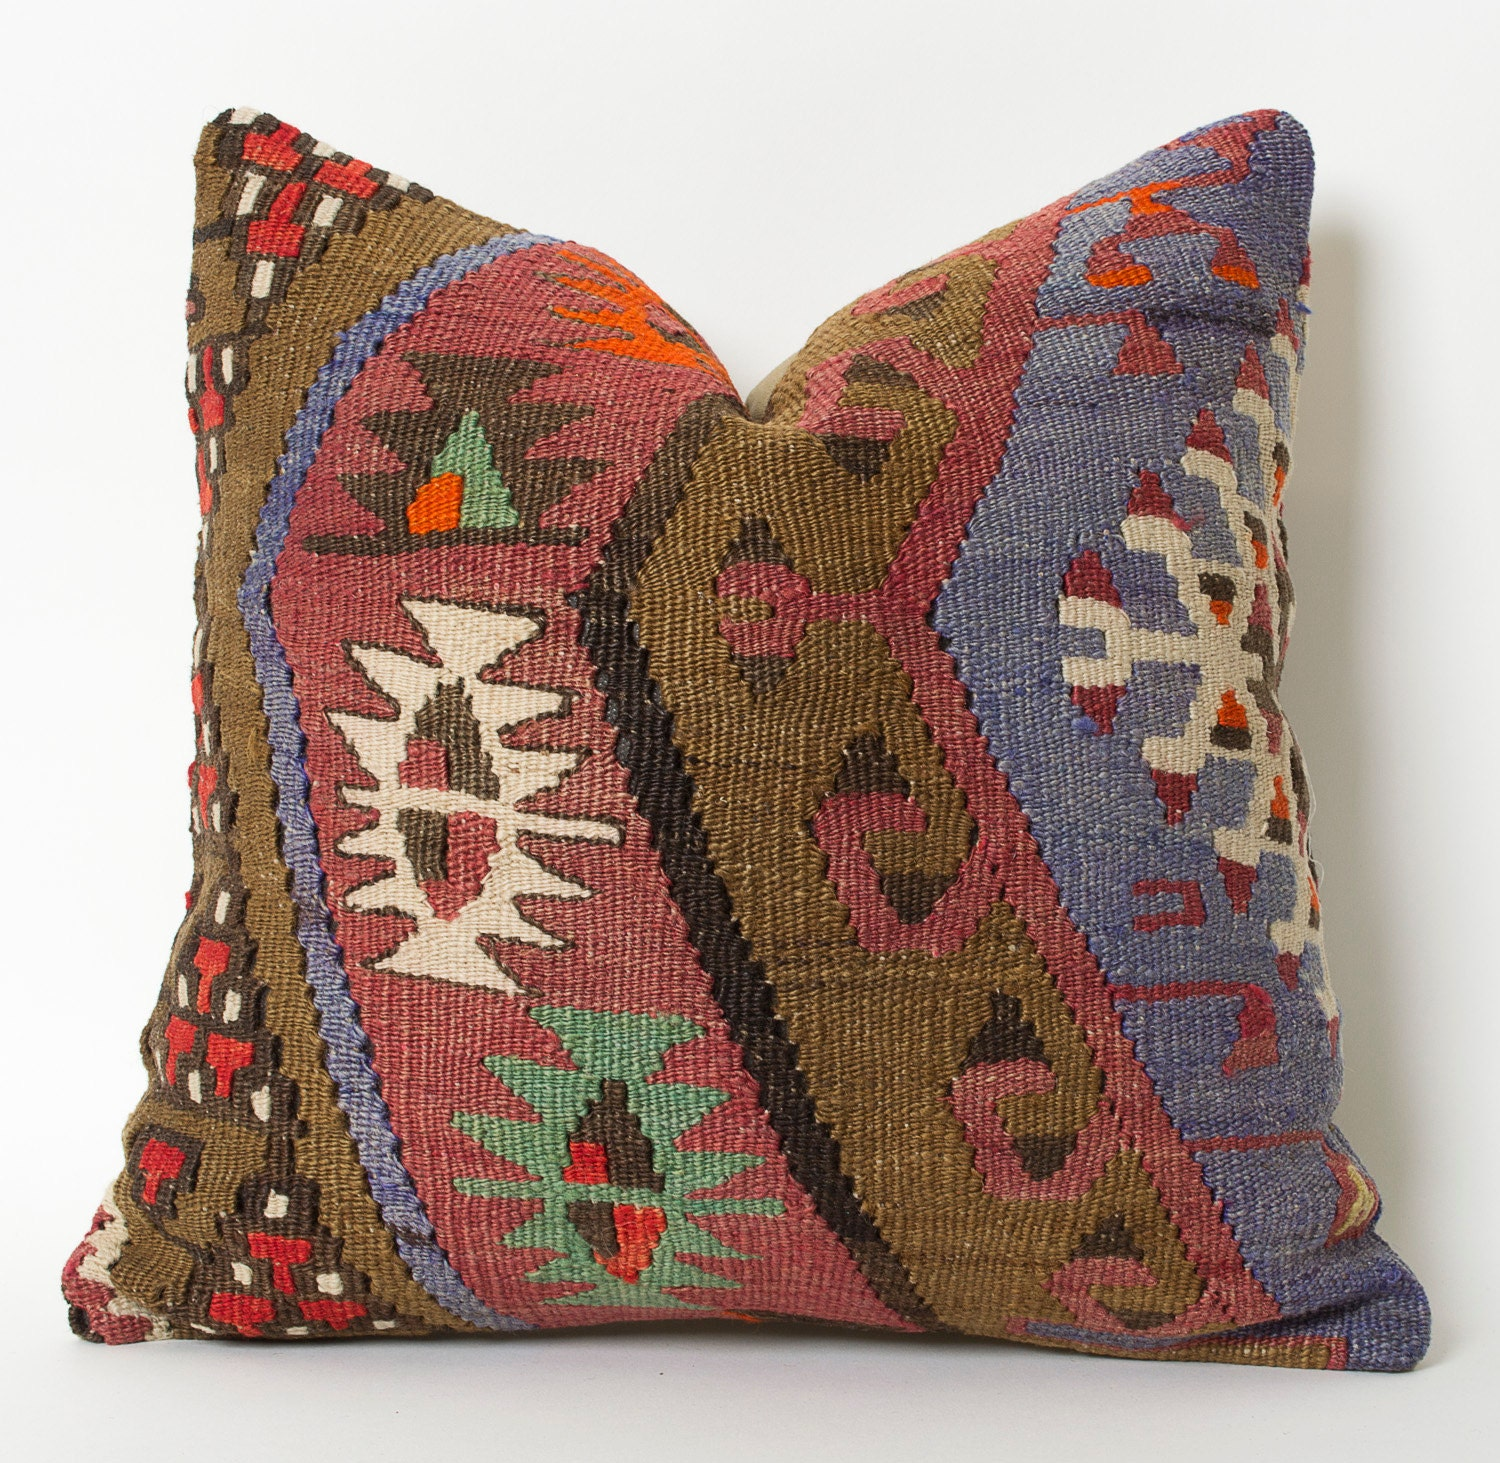 Moroccan Pillow Berber Berber Pillow Moroccan Cushion Kilim